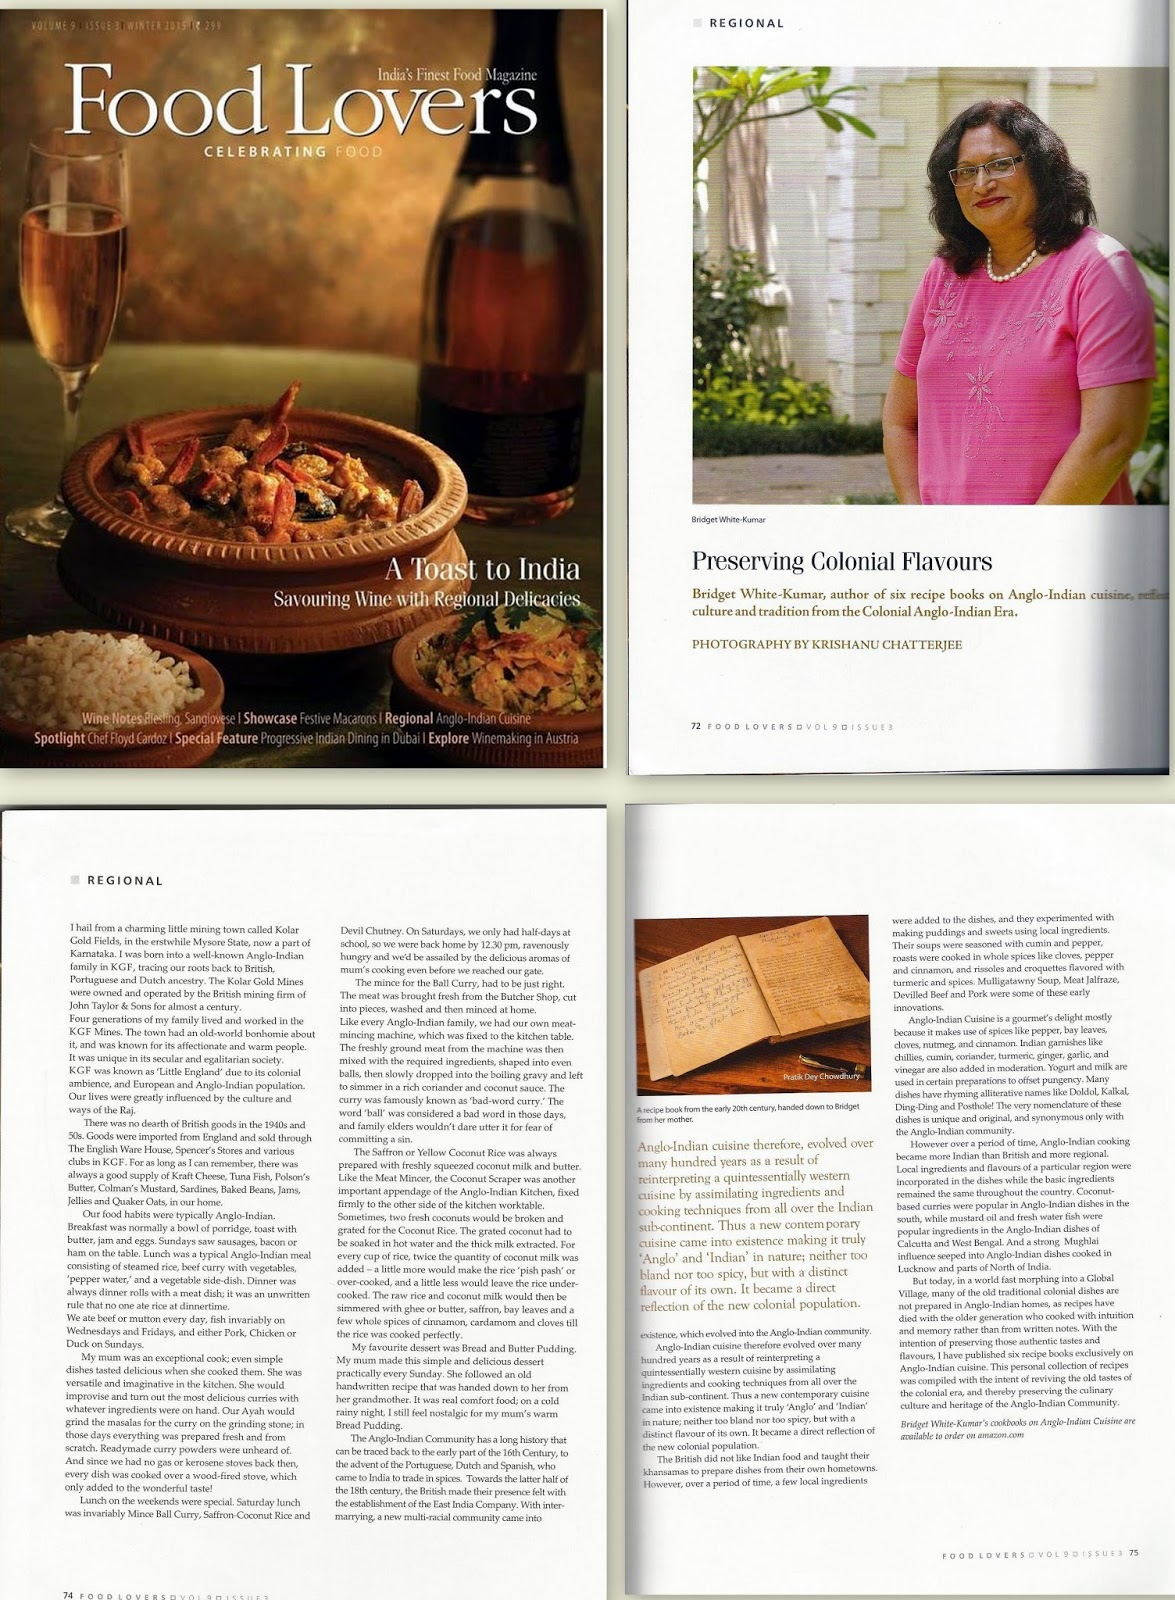 Anglo indian recipes by bridget white bridget white kumar anglo indian recipes by bridget white bridget white kumar featured in food lovers magazine winter 2015 forumfinder Choice Image